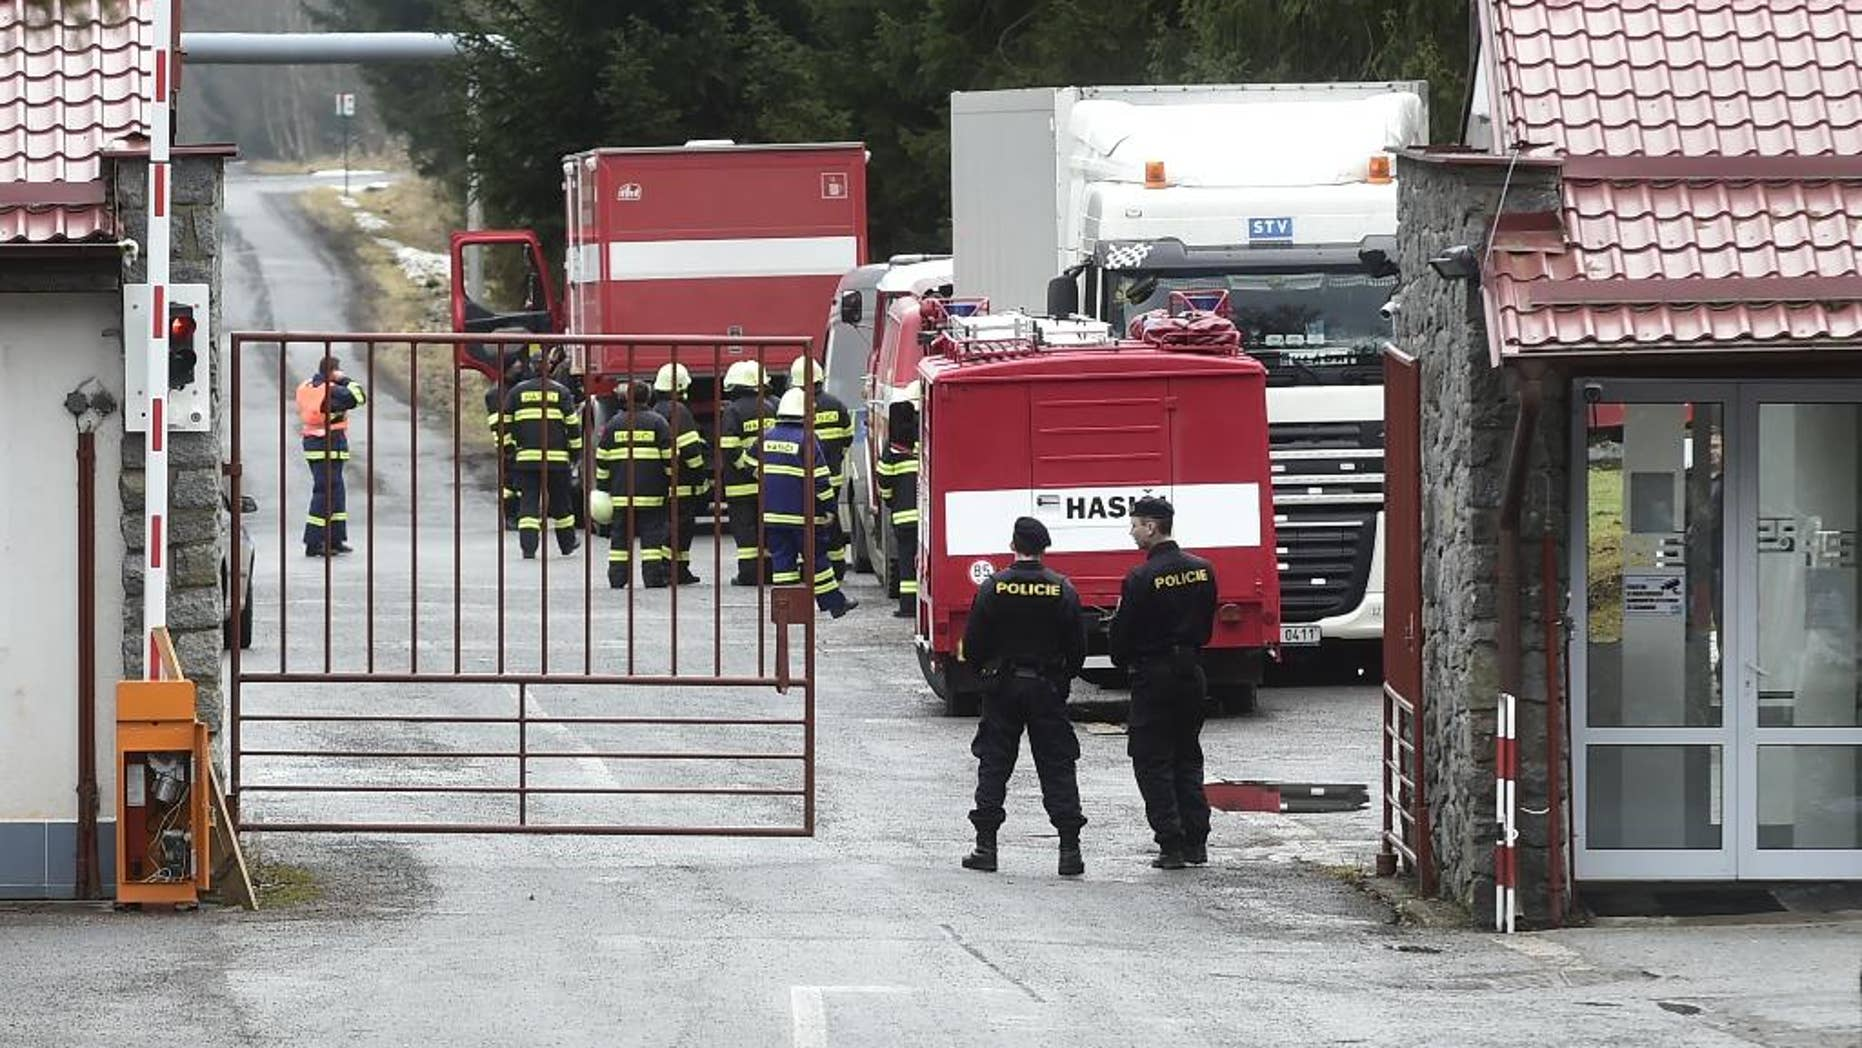 Two police officers watch over a gate as firemen stand nearby in the machinery plant Policske Strojirny where explosions have injured several people in Policka, 154 kilometers South East of Prague on Thursday, Feb. 23, 2017.  (Josef Vostarek/CTK via AP)